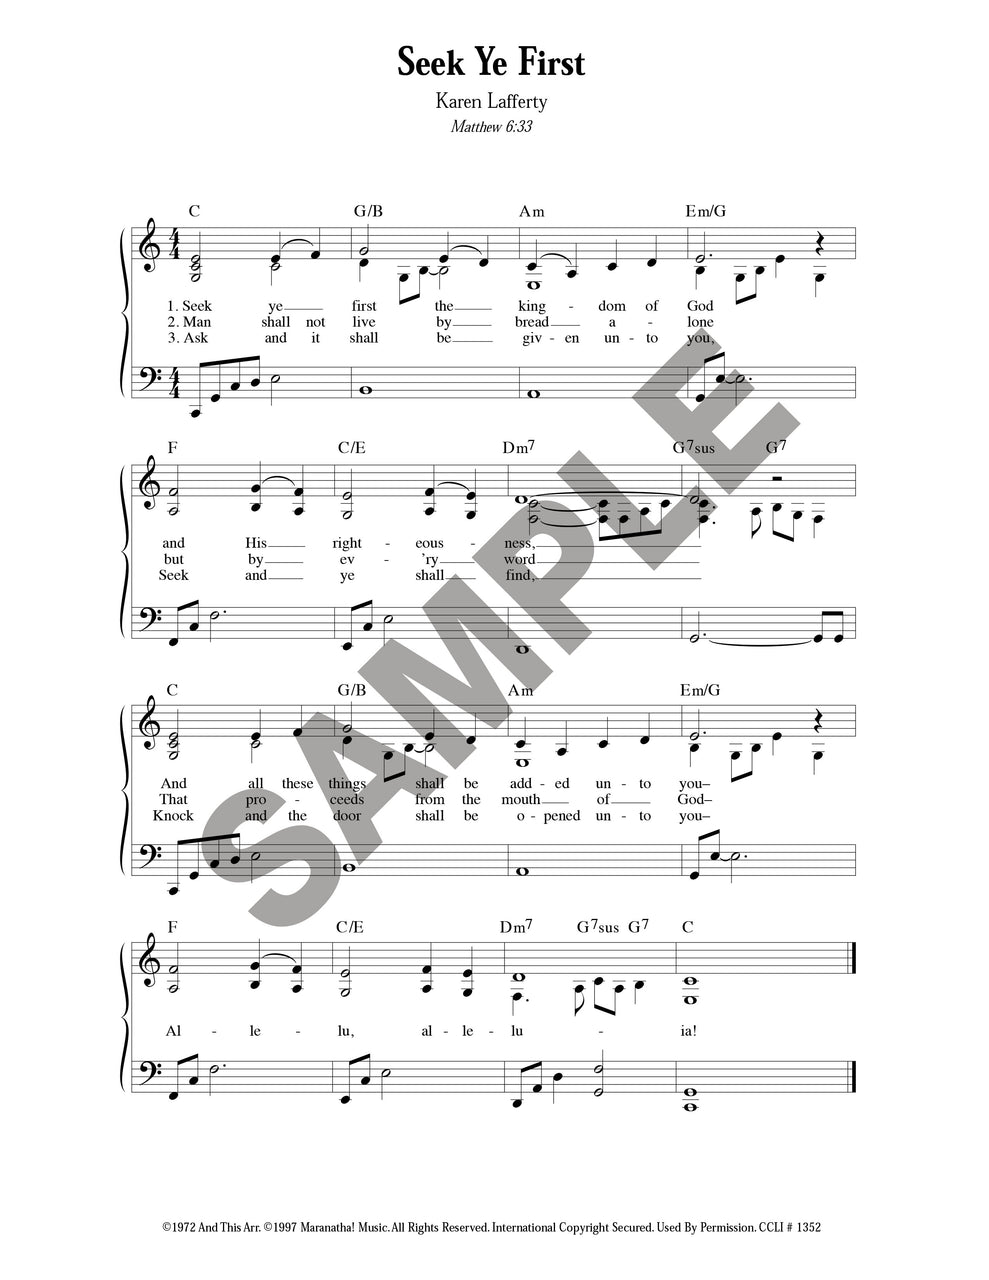 Hide and seek alto sax and trombone sheet music download free in.